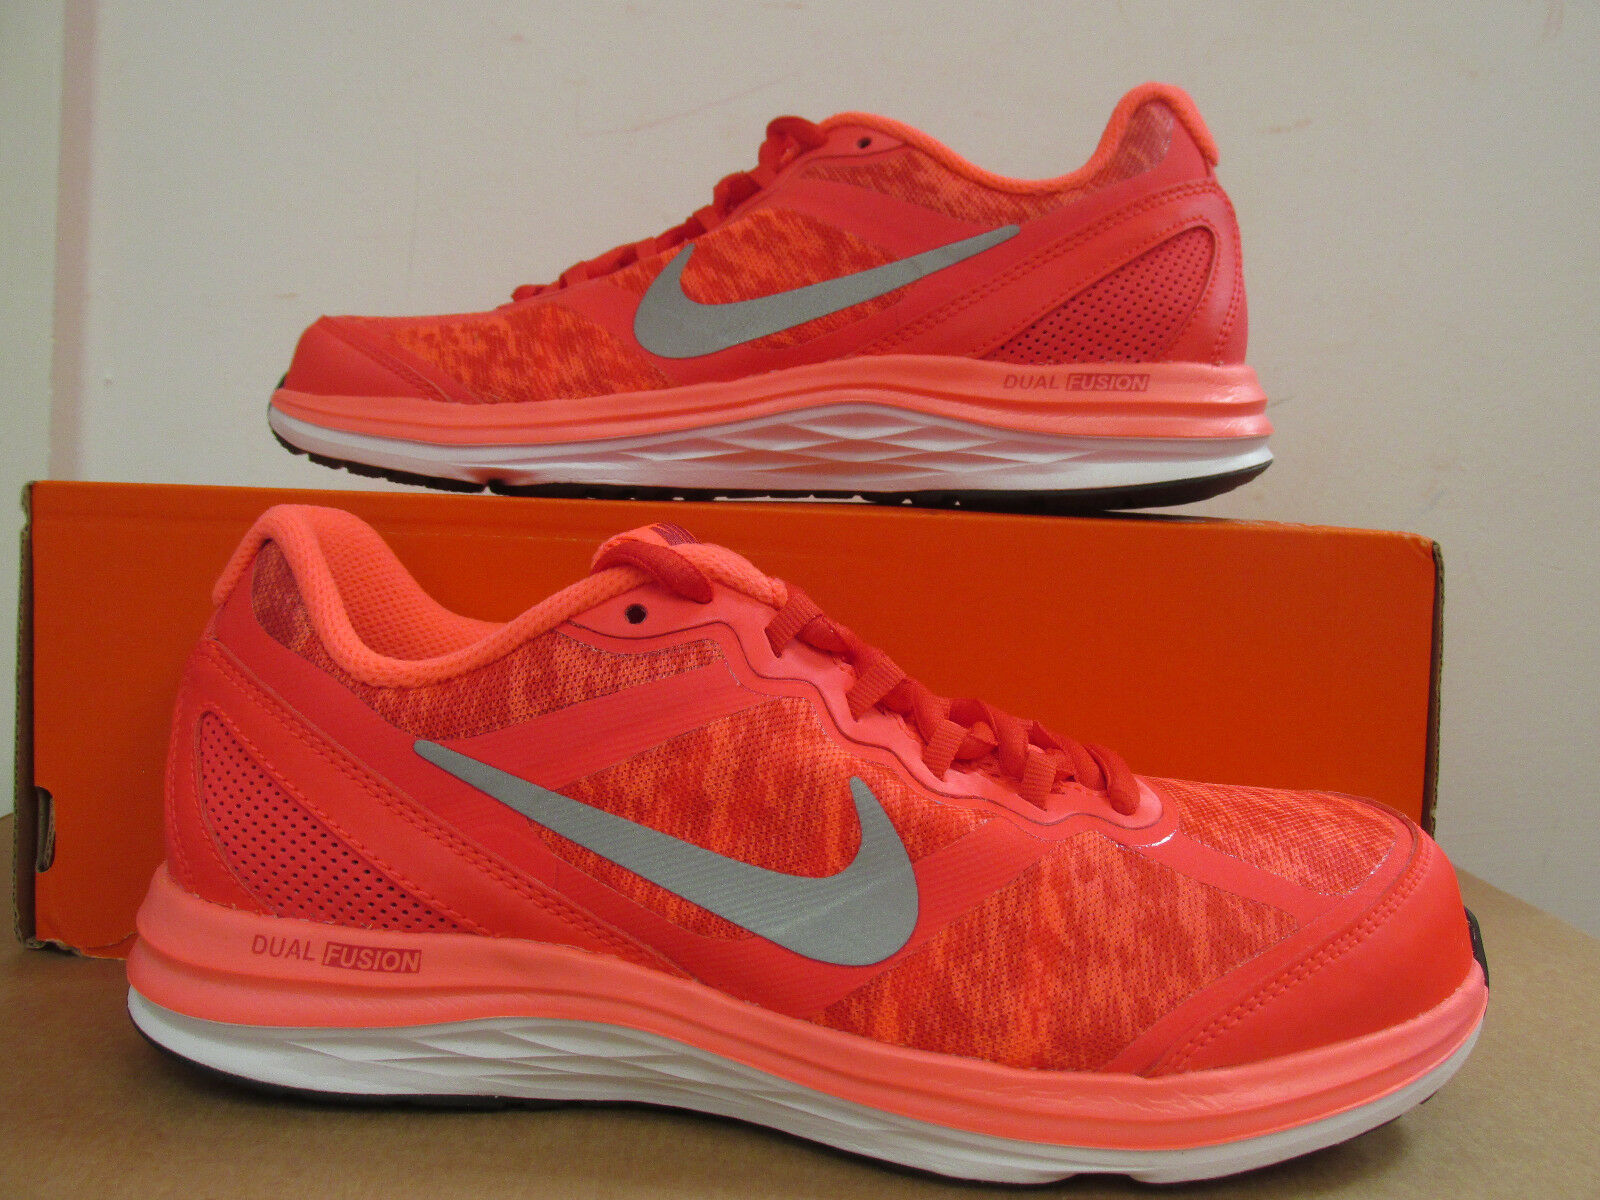 quality design a655b 2ed51 ... discount nike dual fusion run 601 3 flash mujer running trainers 685144  601 run clearance c1f486 ...